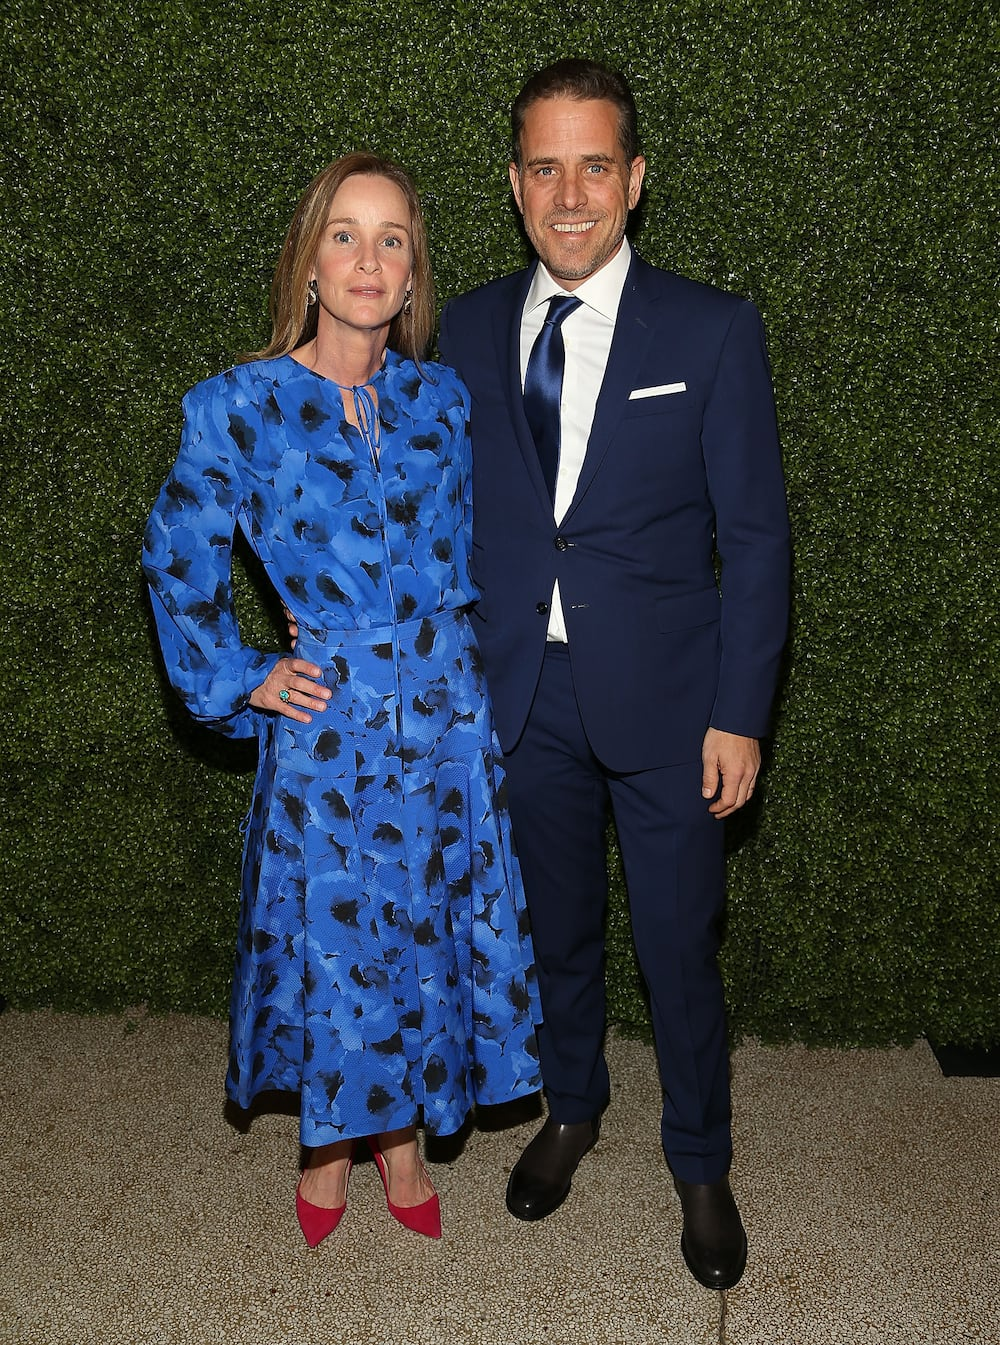 Hunter Biden and his wife